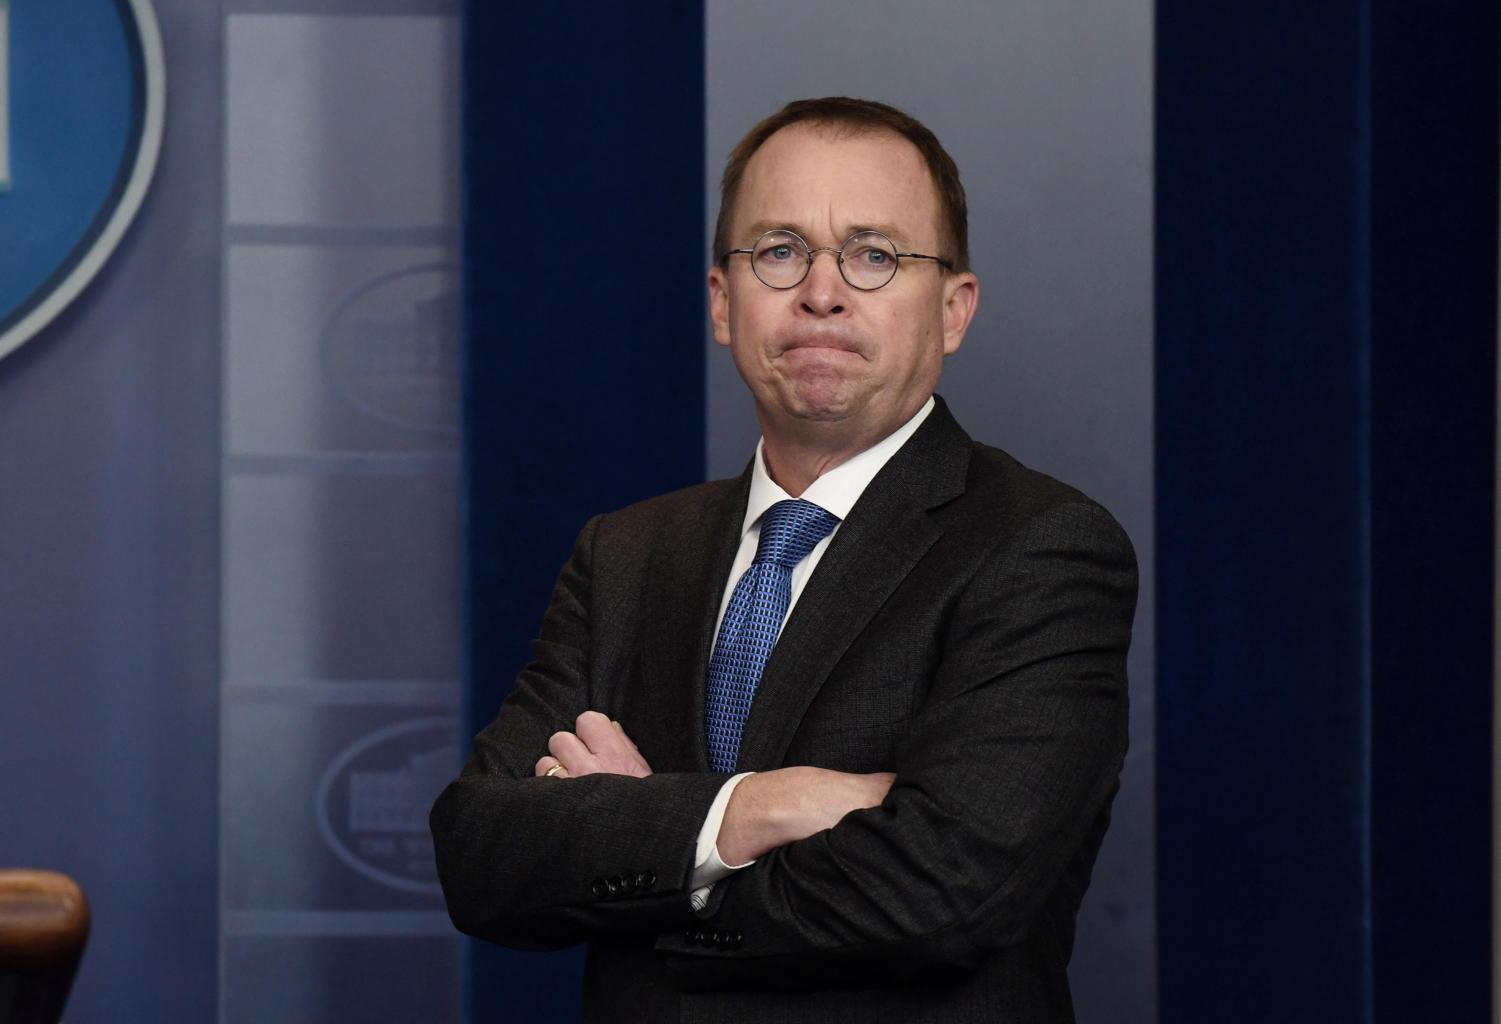 Office of Management and Budget Director and Acting Director fo the Consumer Financial Protection Bureau Mick Mulvaney Jan. 19, 2018 in the White House in Washington, D.C. The CFPB's Student Loan Ombudsman Seth Frotman resigned Monday, citing political differences. (Olivier Douliery/Abaca Press/TNS)